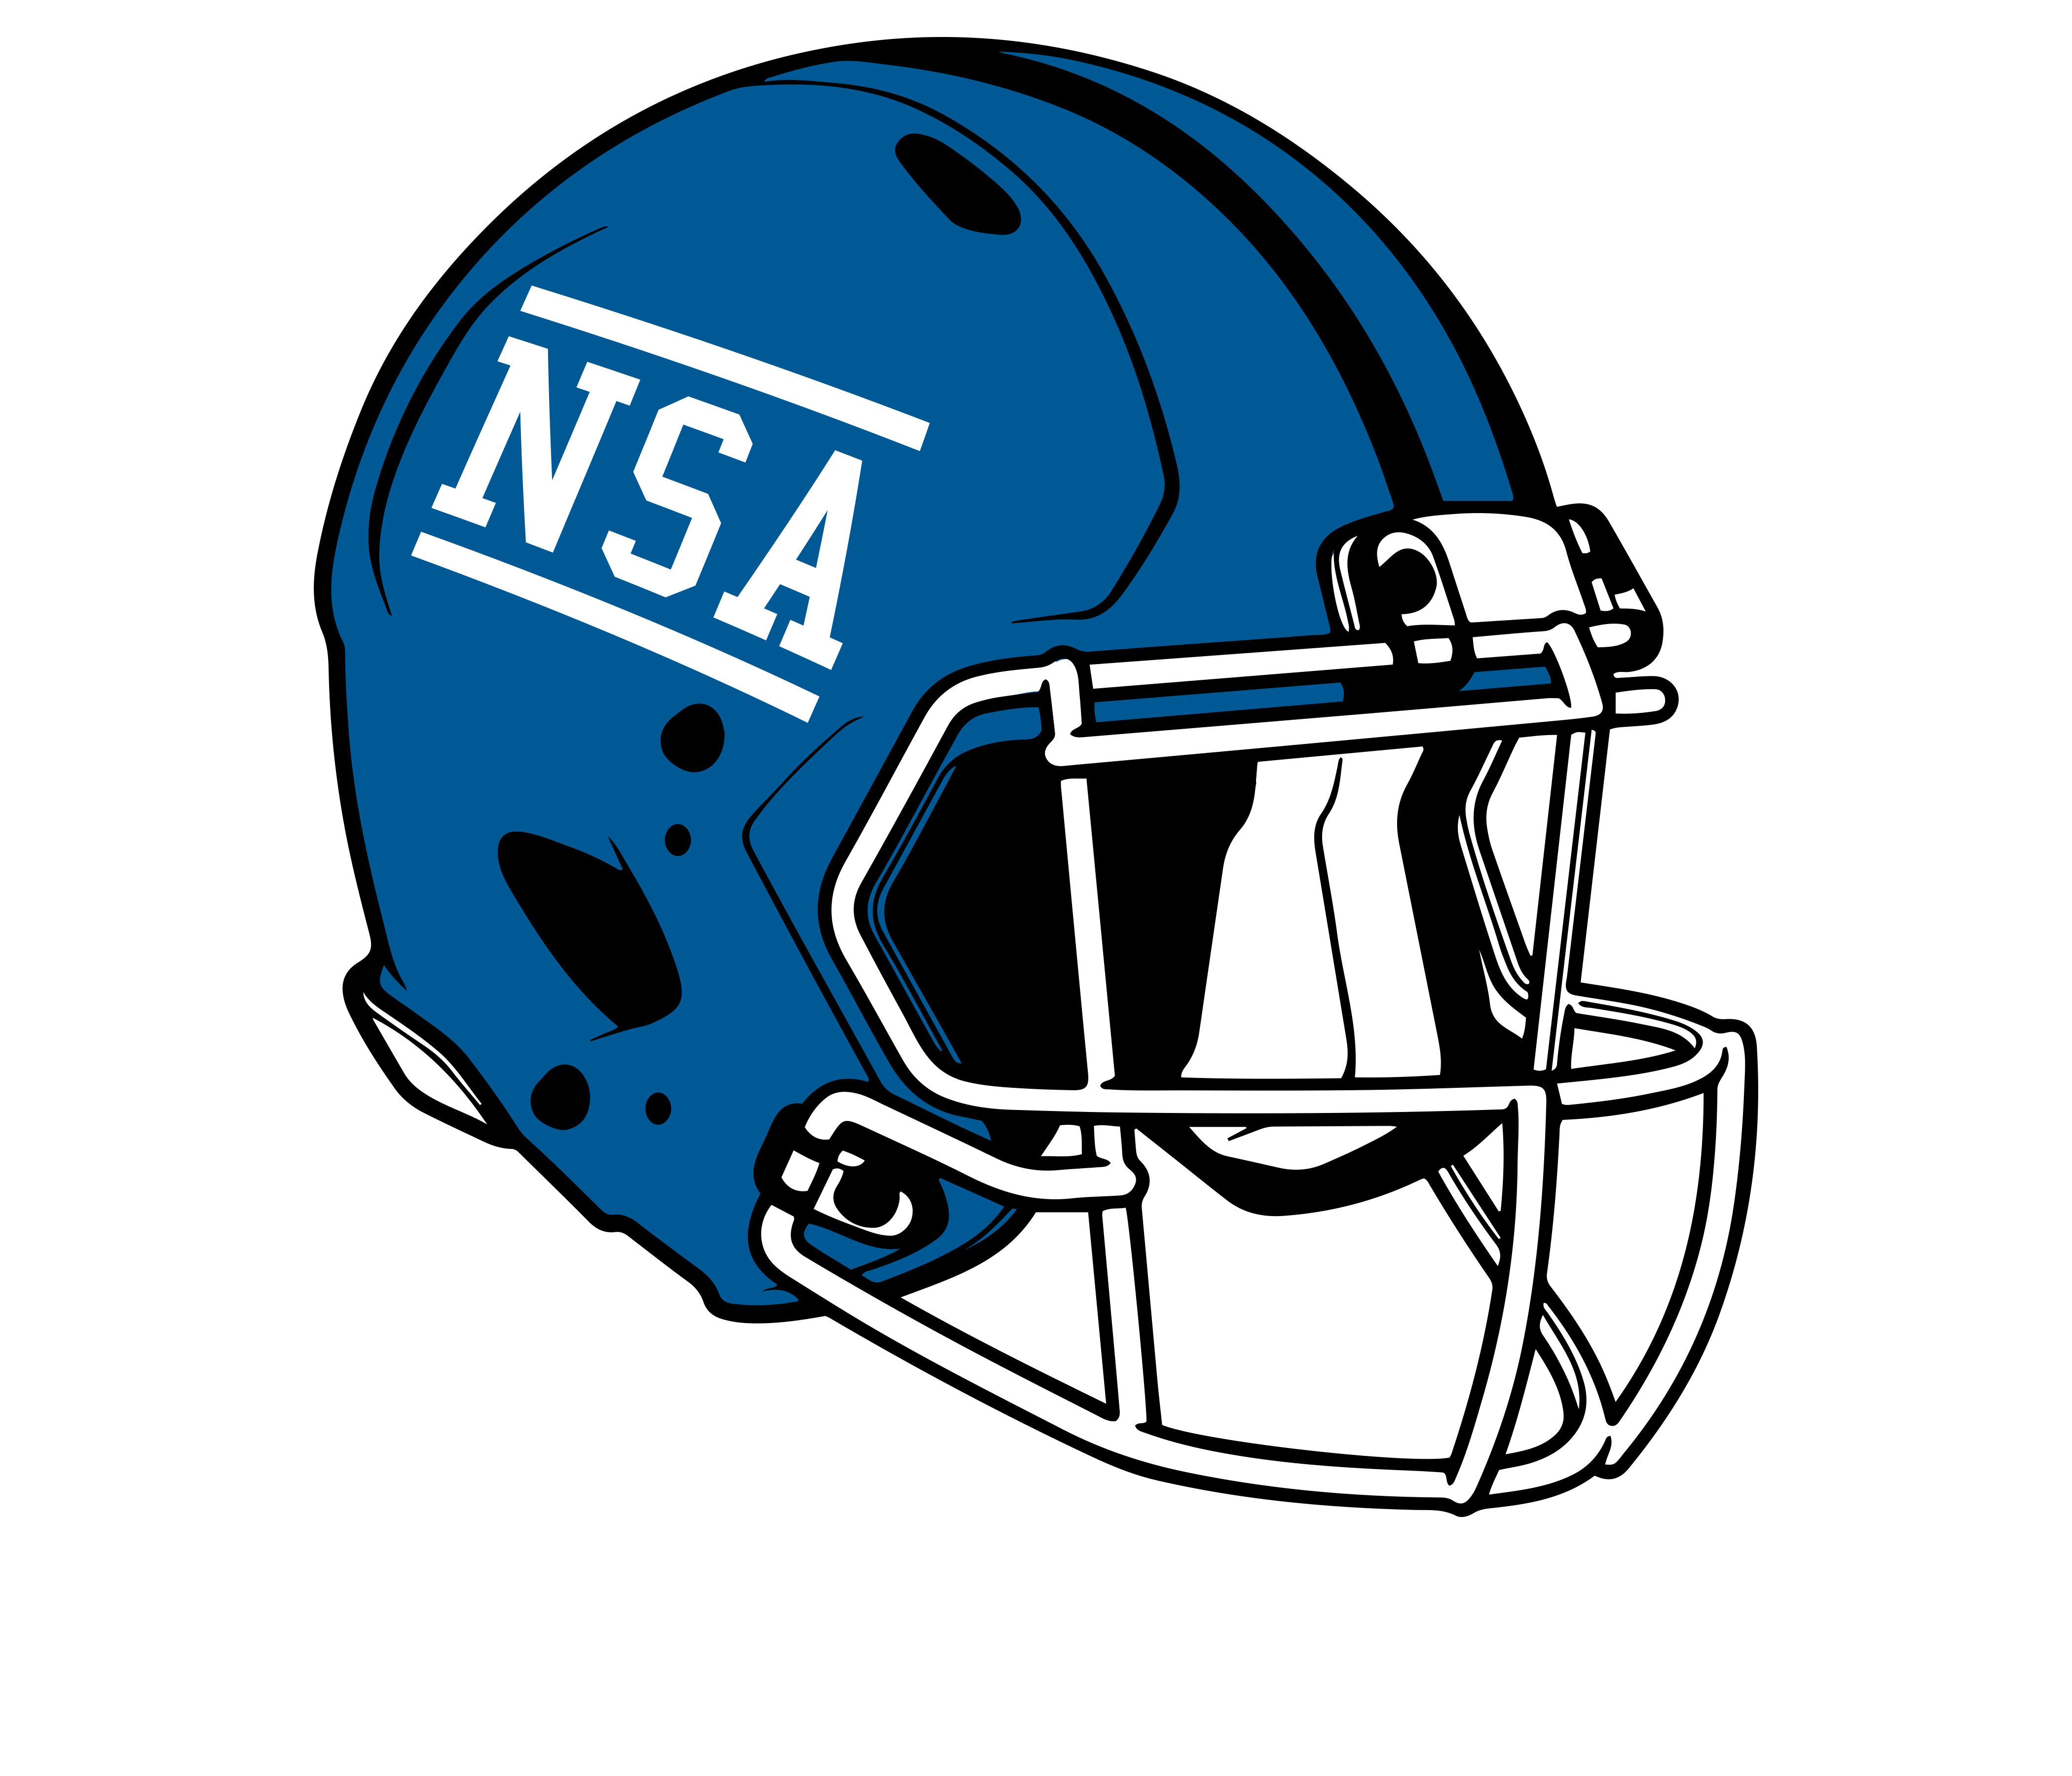 National Sports Agency